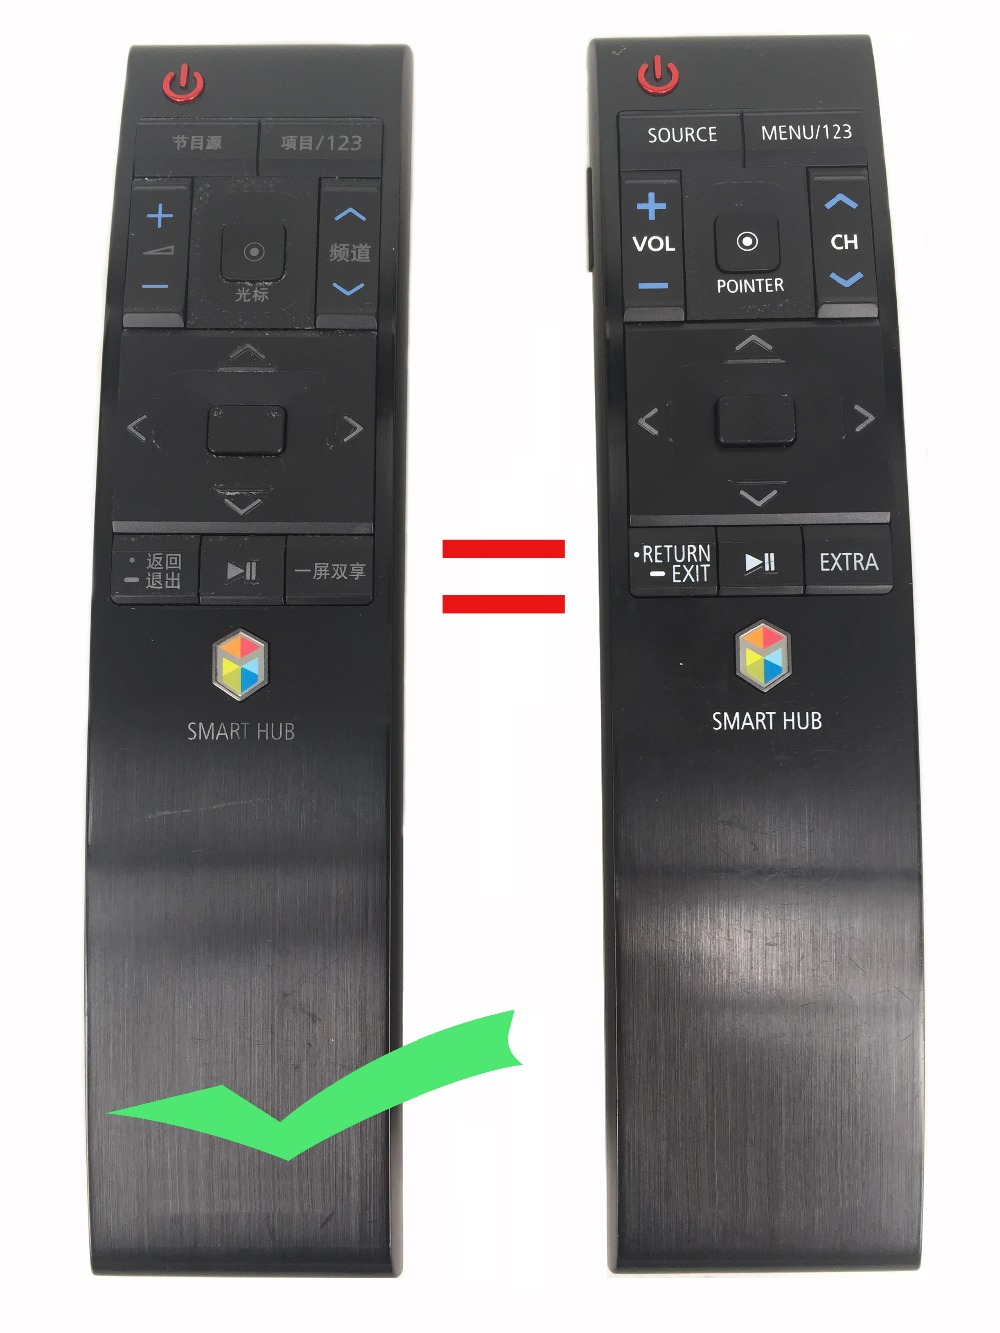 99% NEW Original BN59-01220G JU7500F Smart Remote Control For Samsung Curved TV SMART 4K UHD TV Fernbedienung